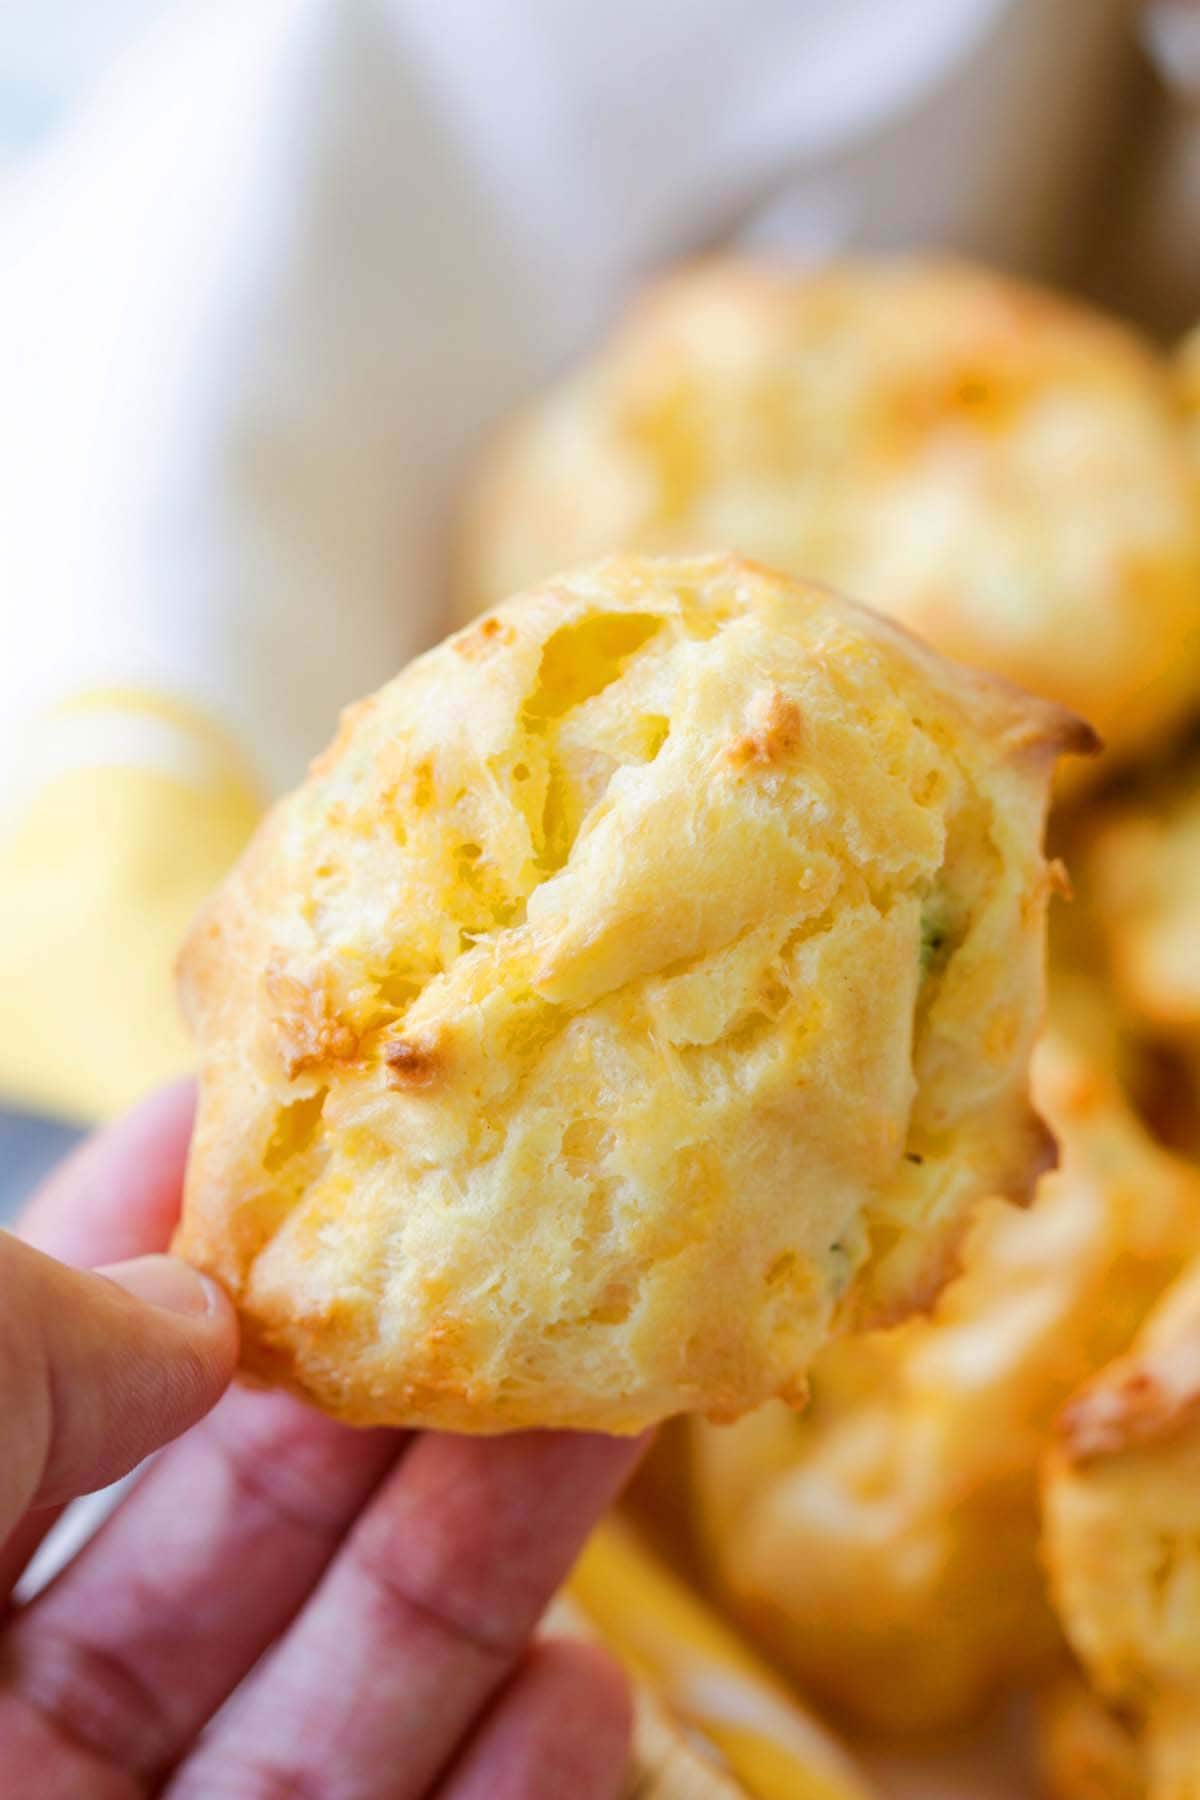 French cheddar cheese puff pastry held in hand.